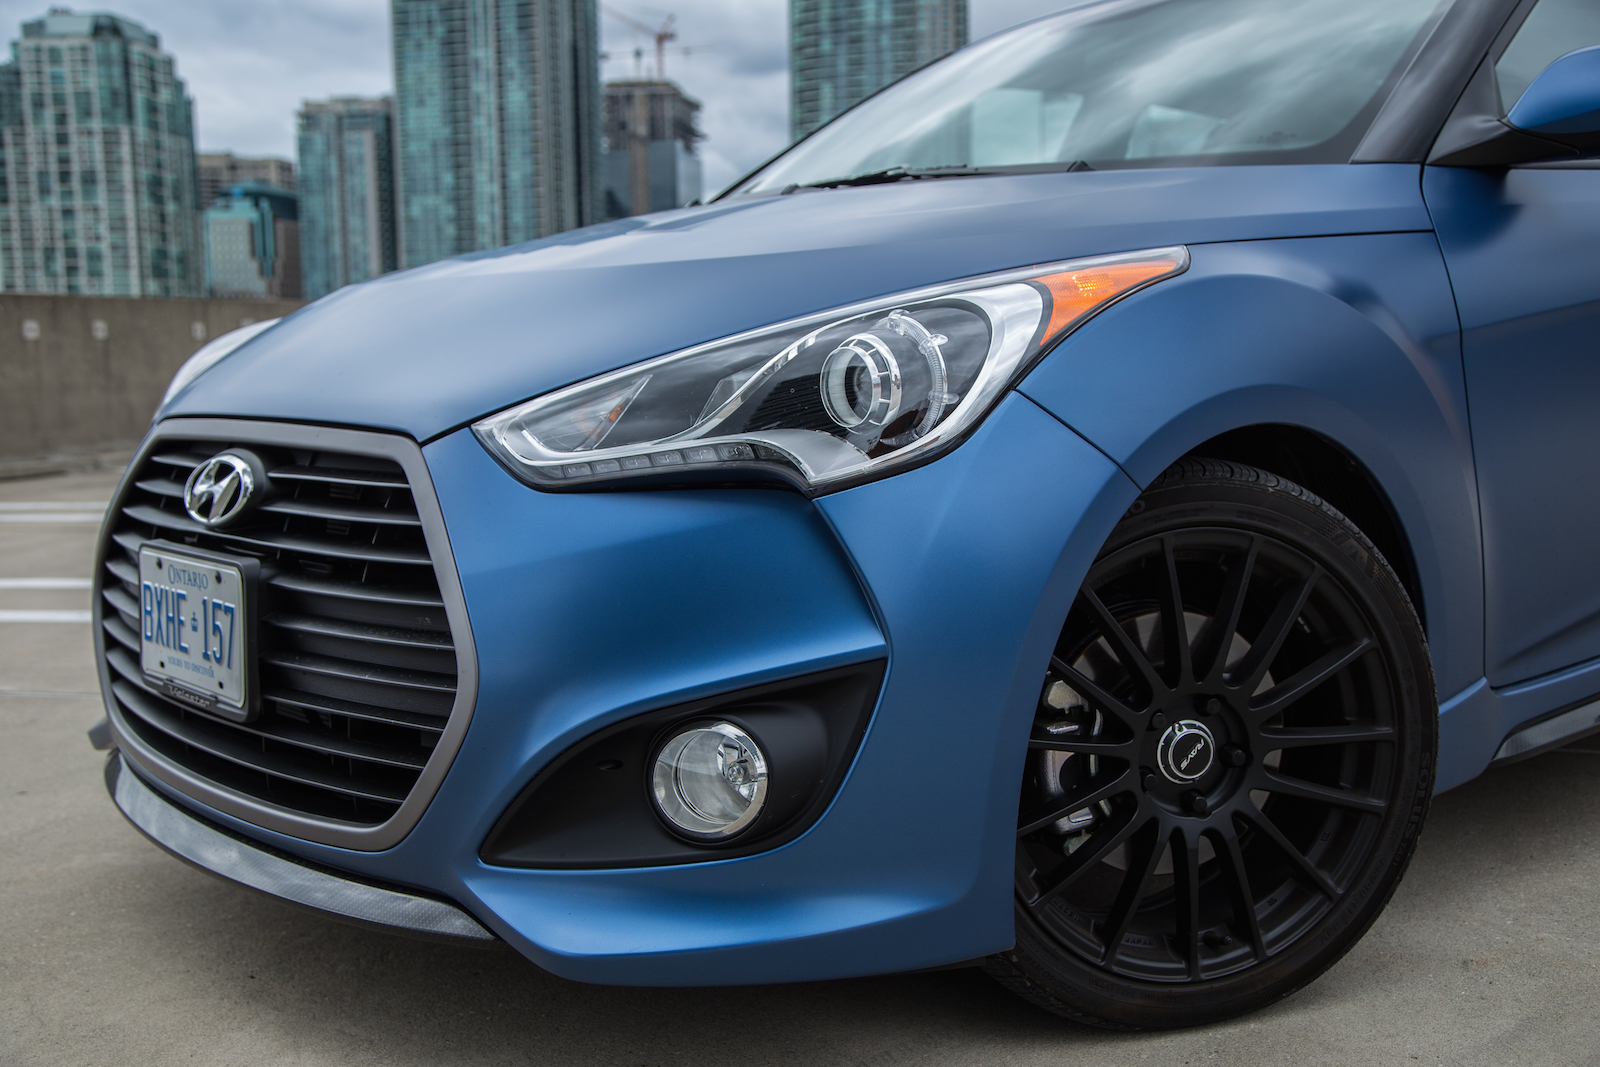 Review 2016 Hyundai Veloster Turbo Rally Edition Canadian Auto Review